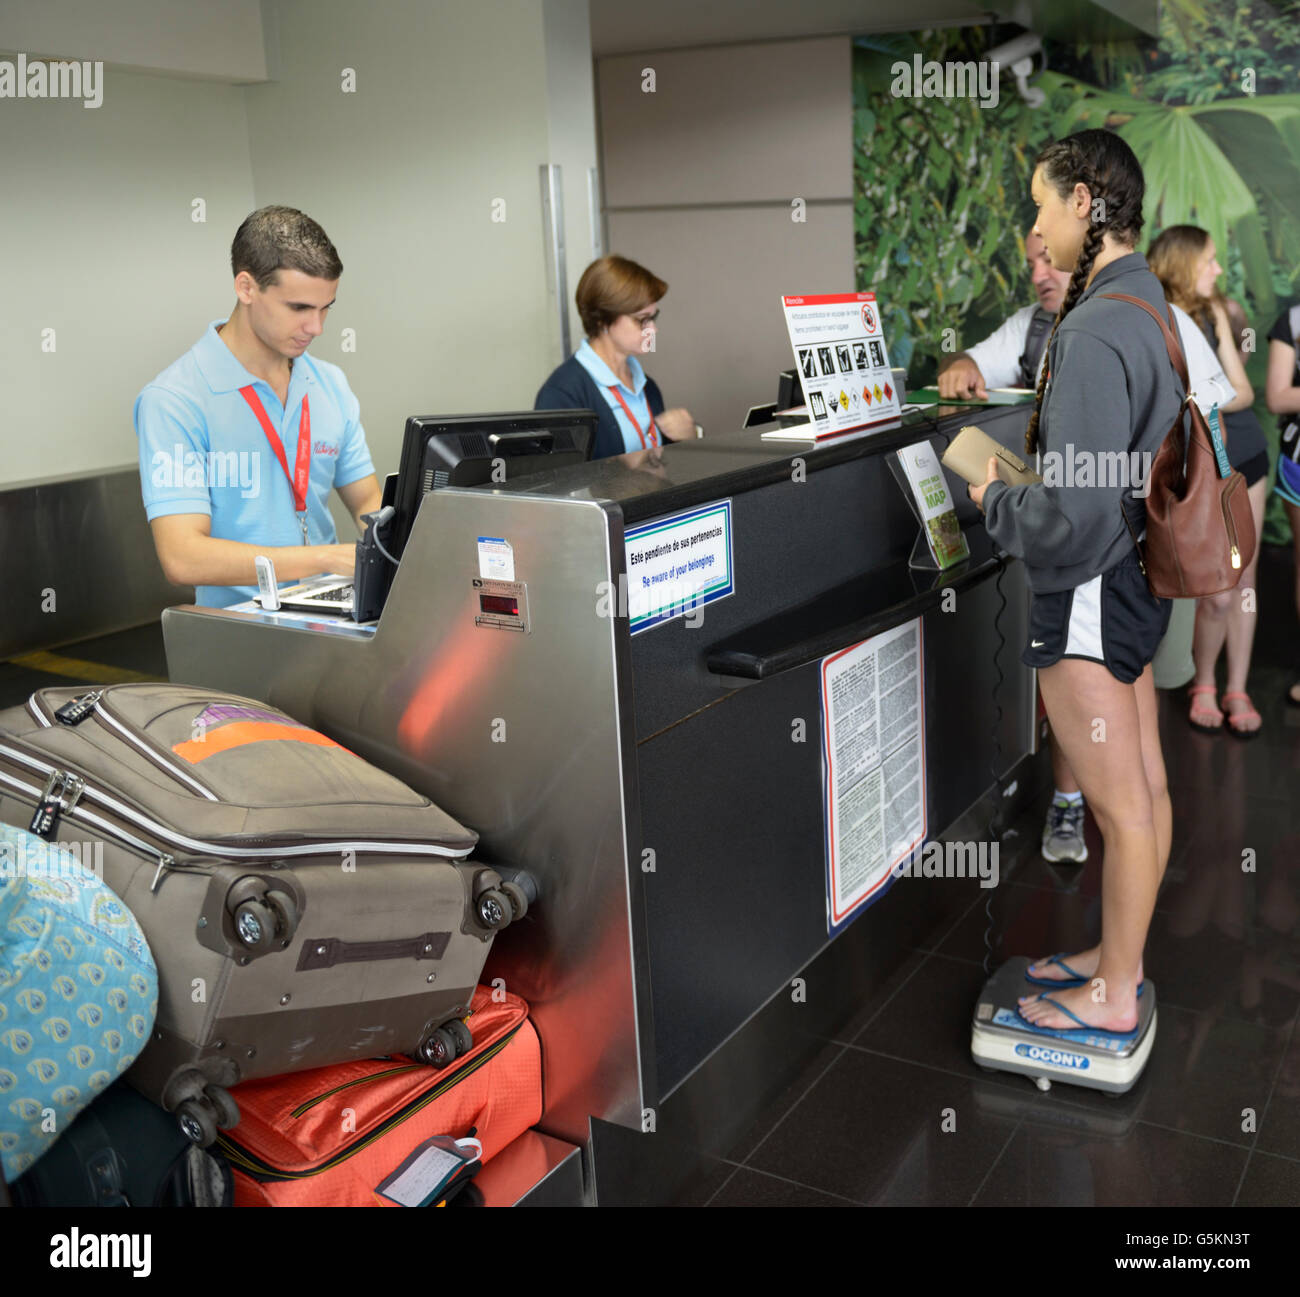 Weigh-in of traveler and luggage at airport before boarding small plane, San Jose, Costa Rica - Stock Image